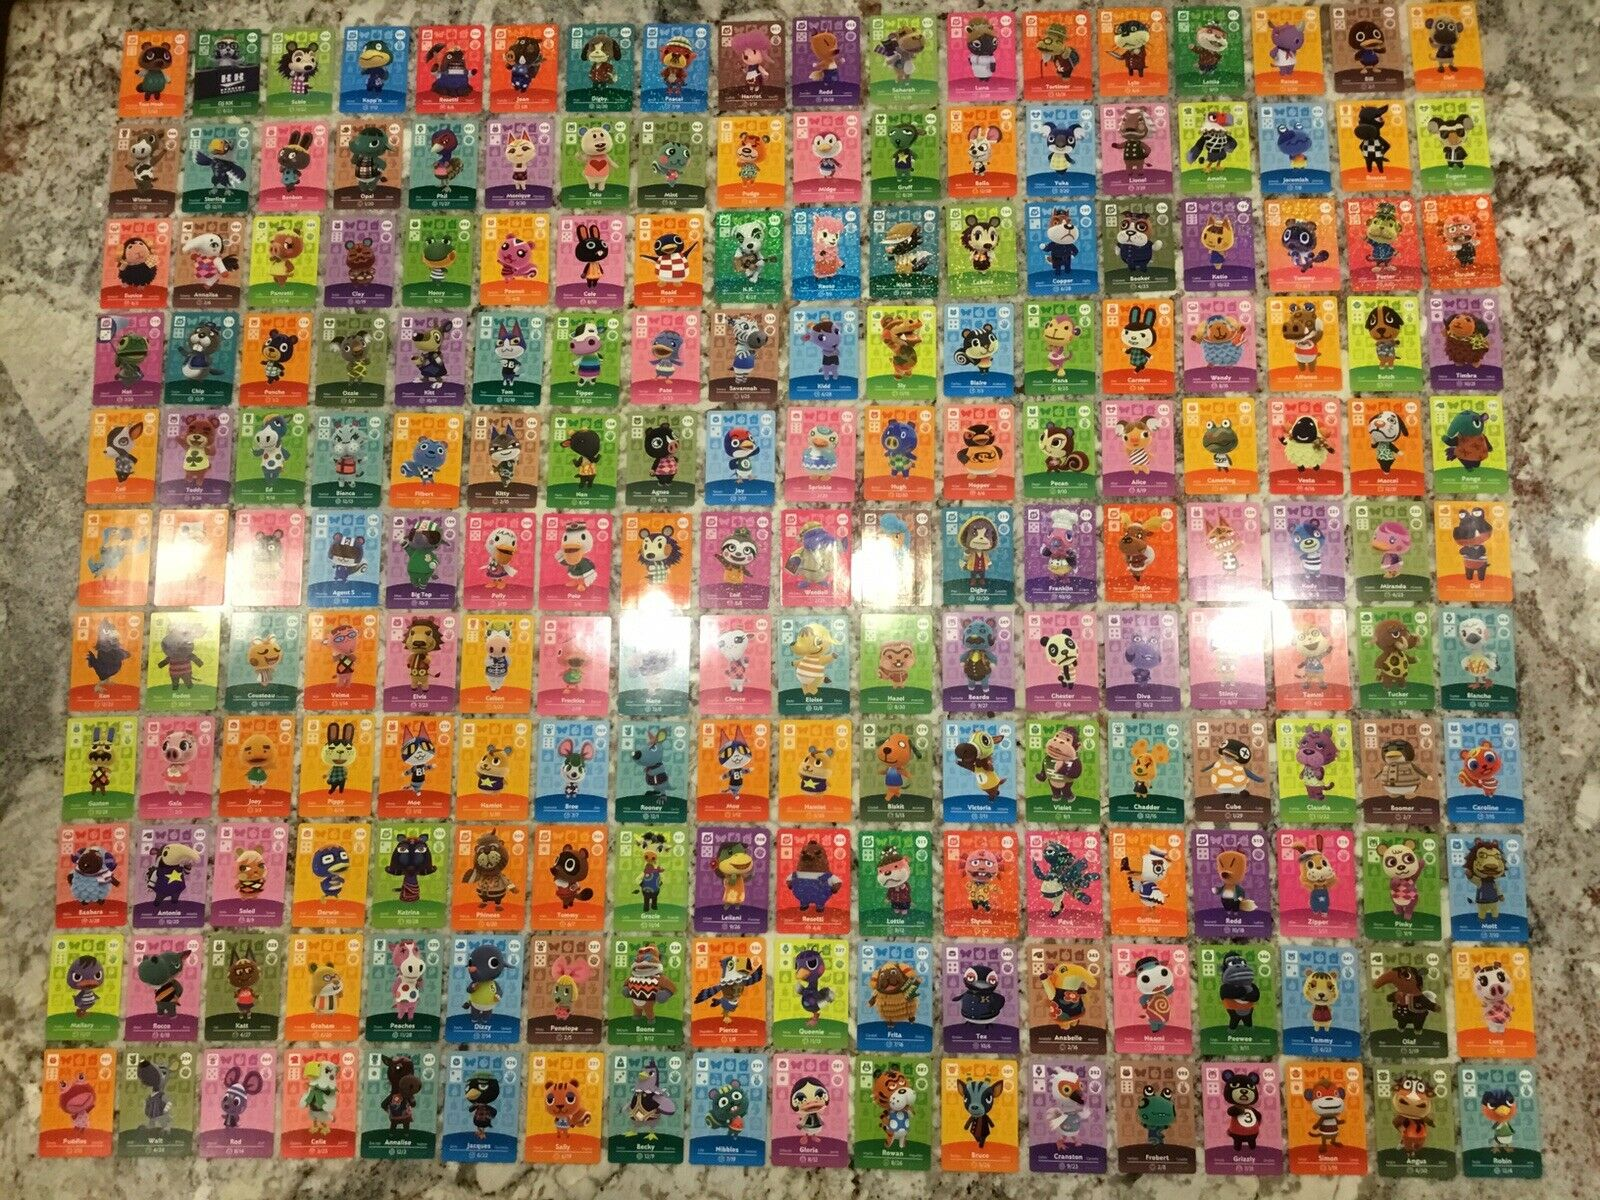 400 Pcs Card Set For Animal Crossing Card Amiibo Card Work for NS Games New Horizons NFC Amibo Switch Welcome Stickers 2